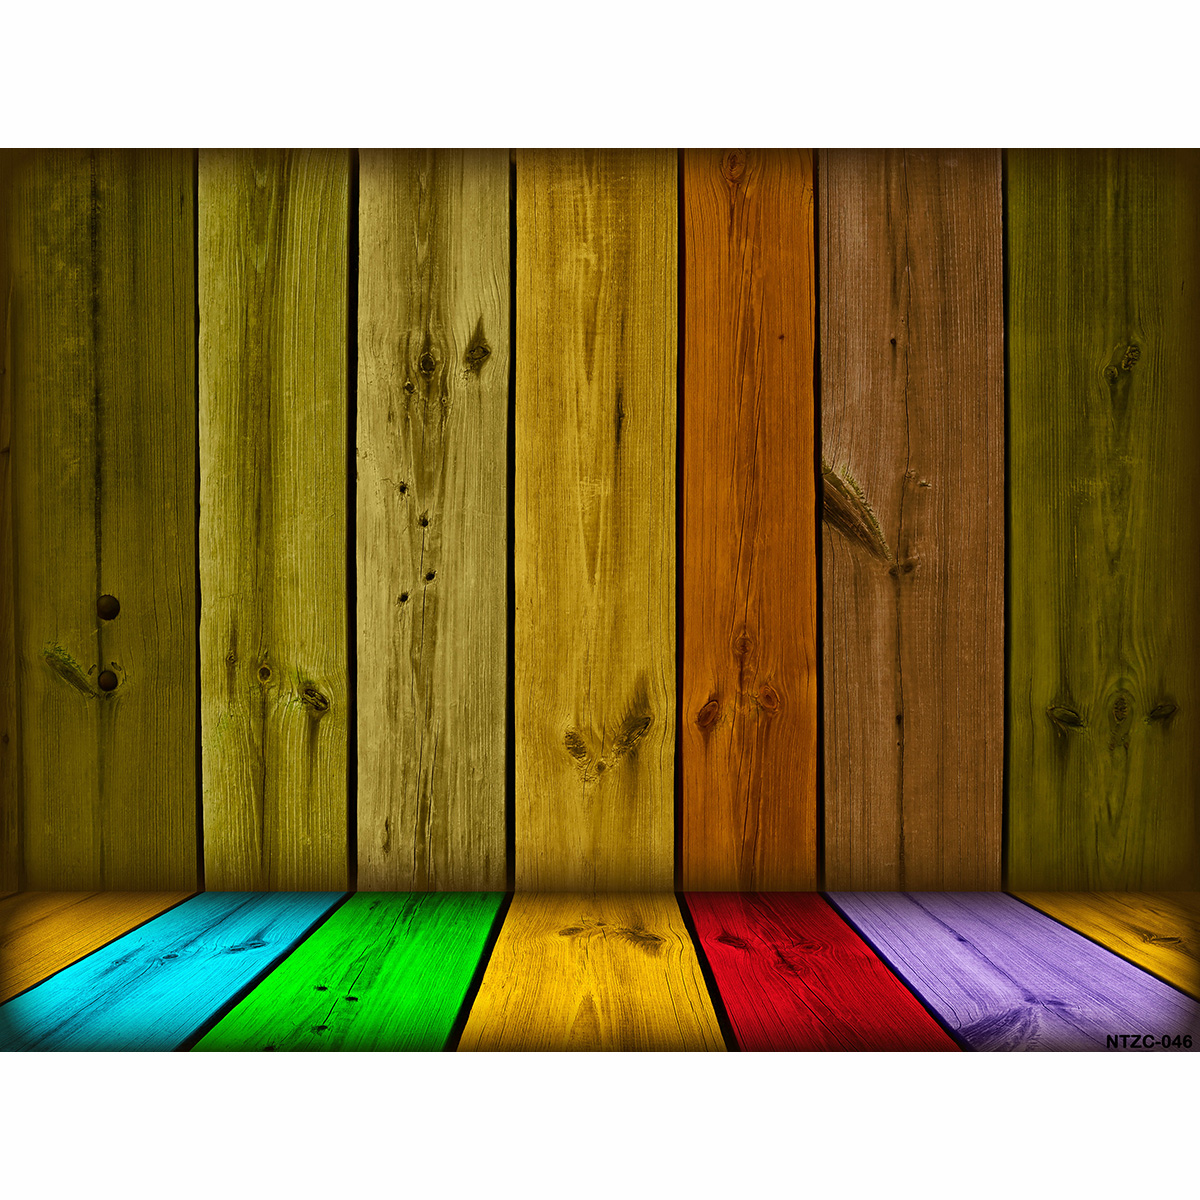 Color contrast walls wood brick wall backgrounds for photo studio ...